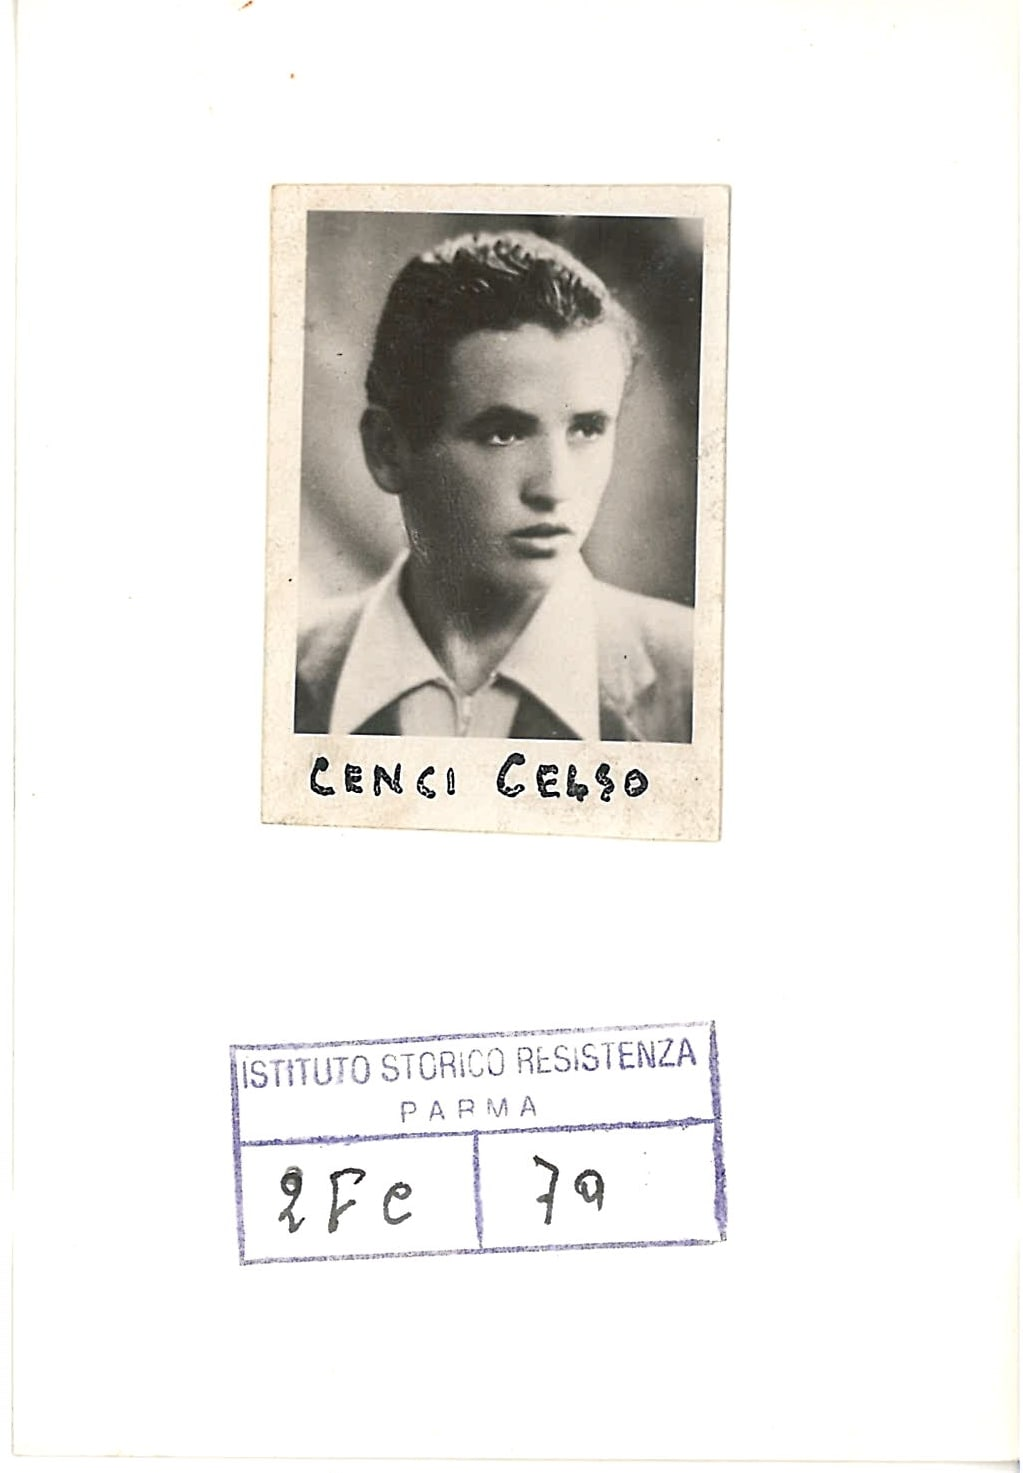 Cenci Celso